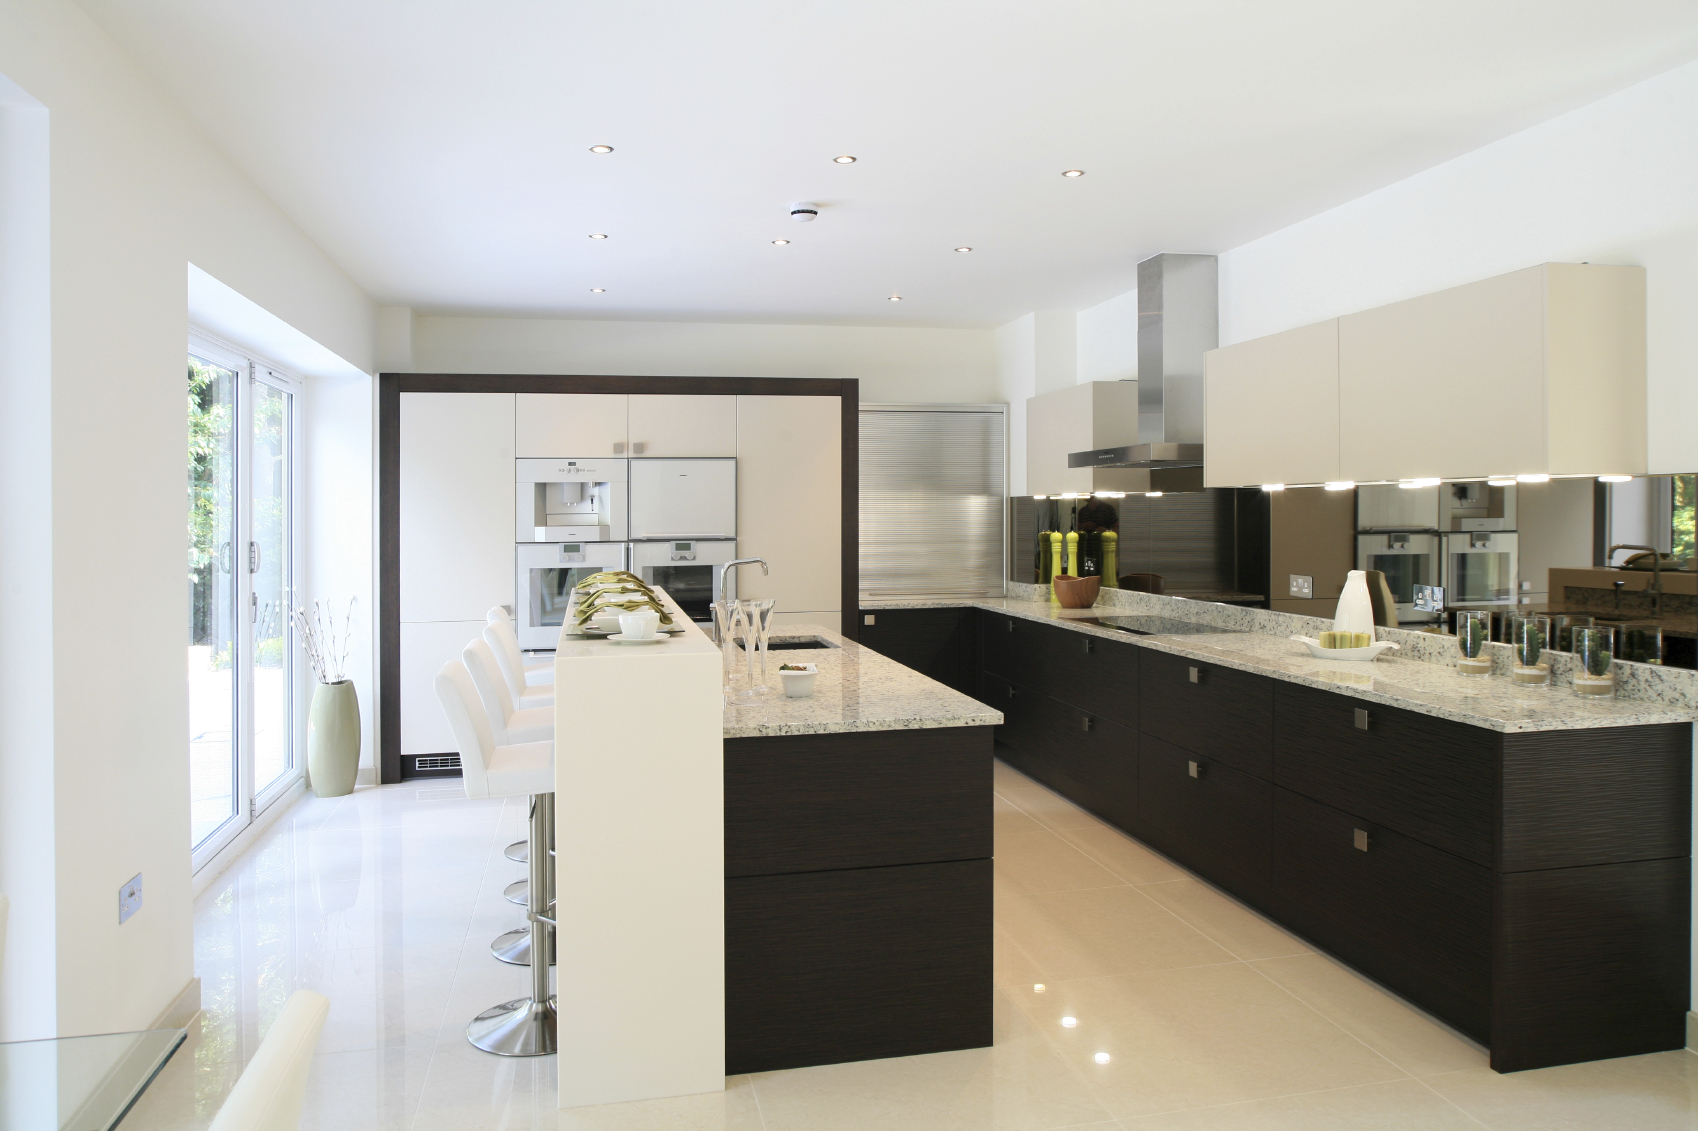 Custom kitchens visionary kitchens custom cabinetry for Kitchen design london